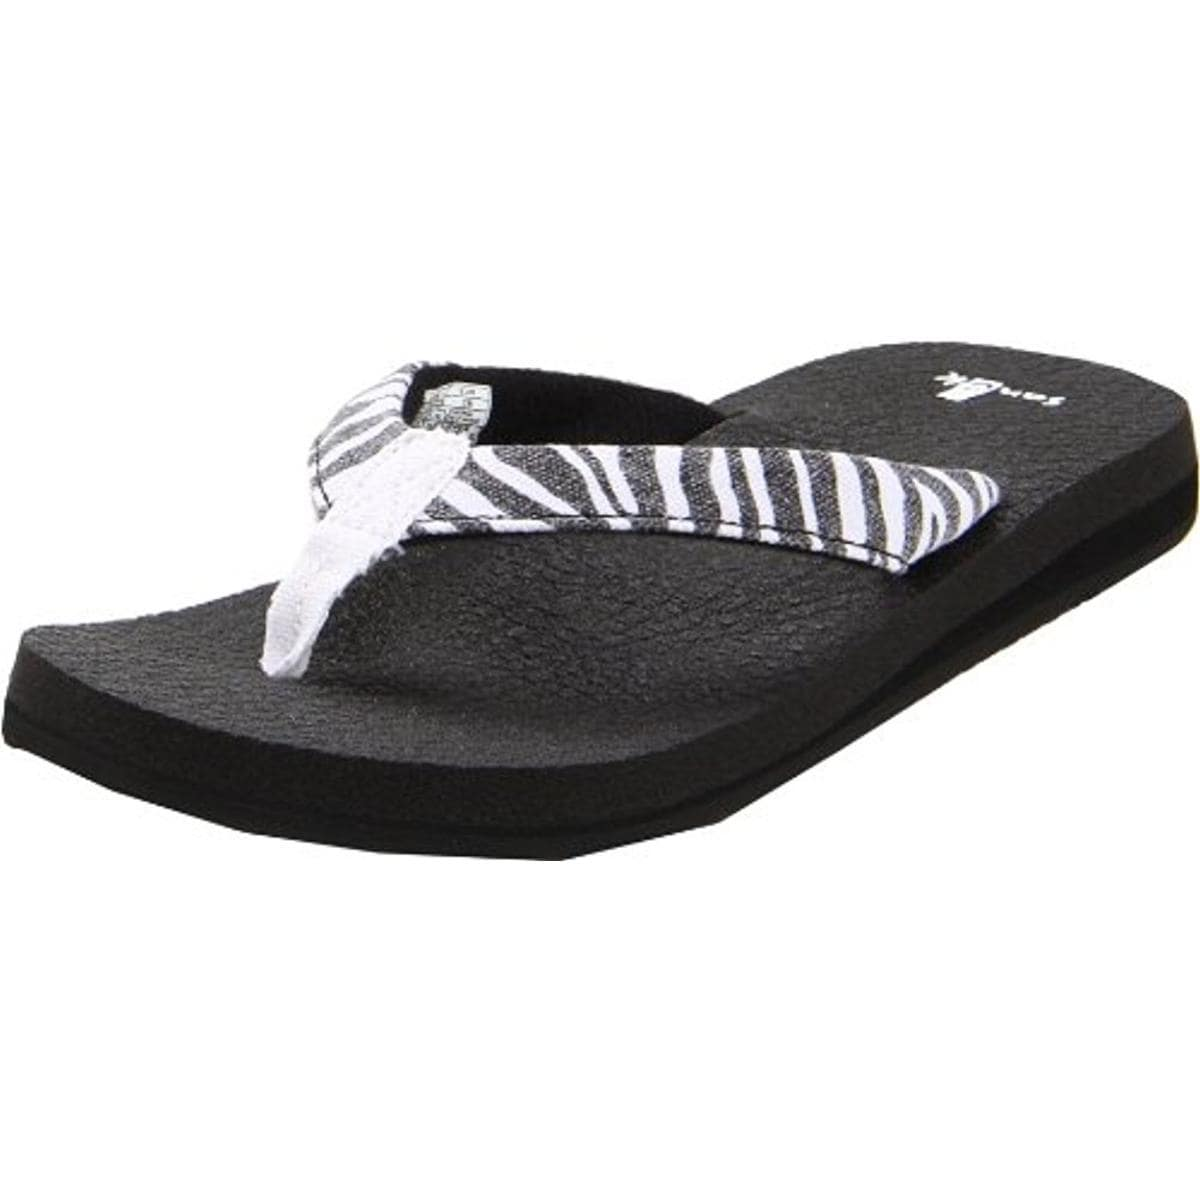 4bc12fd96e3c Shop Sanuk Womens Yoga Wildlife Flip-Flops Canvas - Free Shipping On Orders  Over  45 - Overstock - 13212493